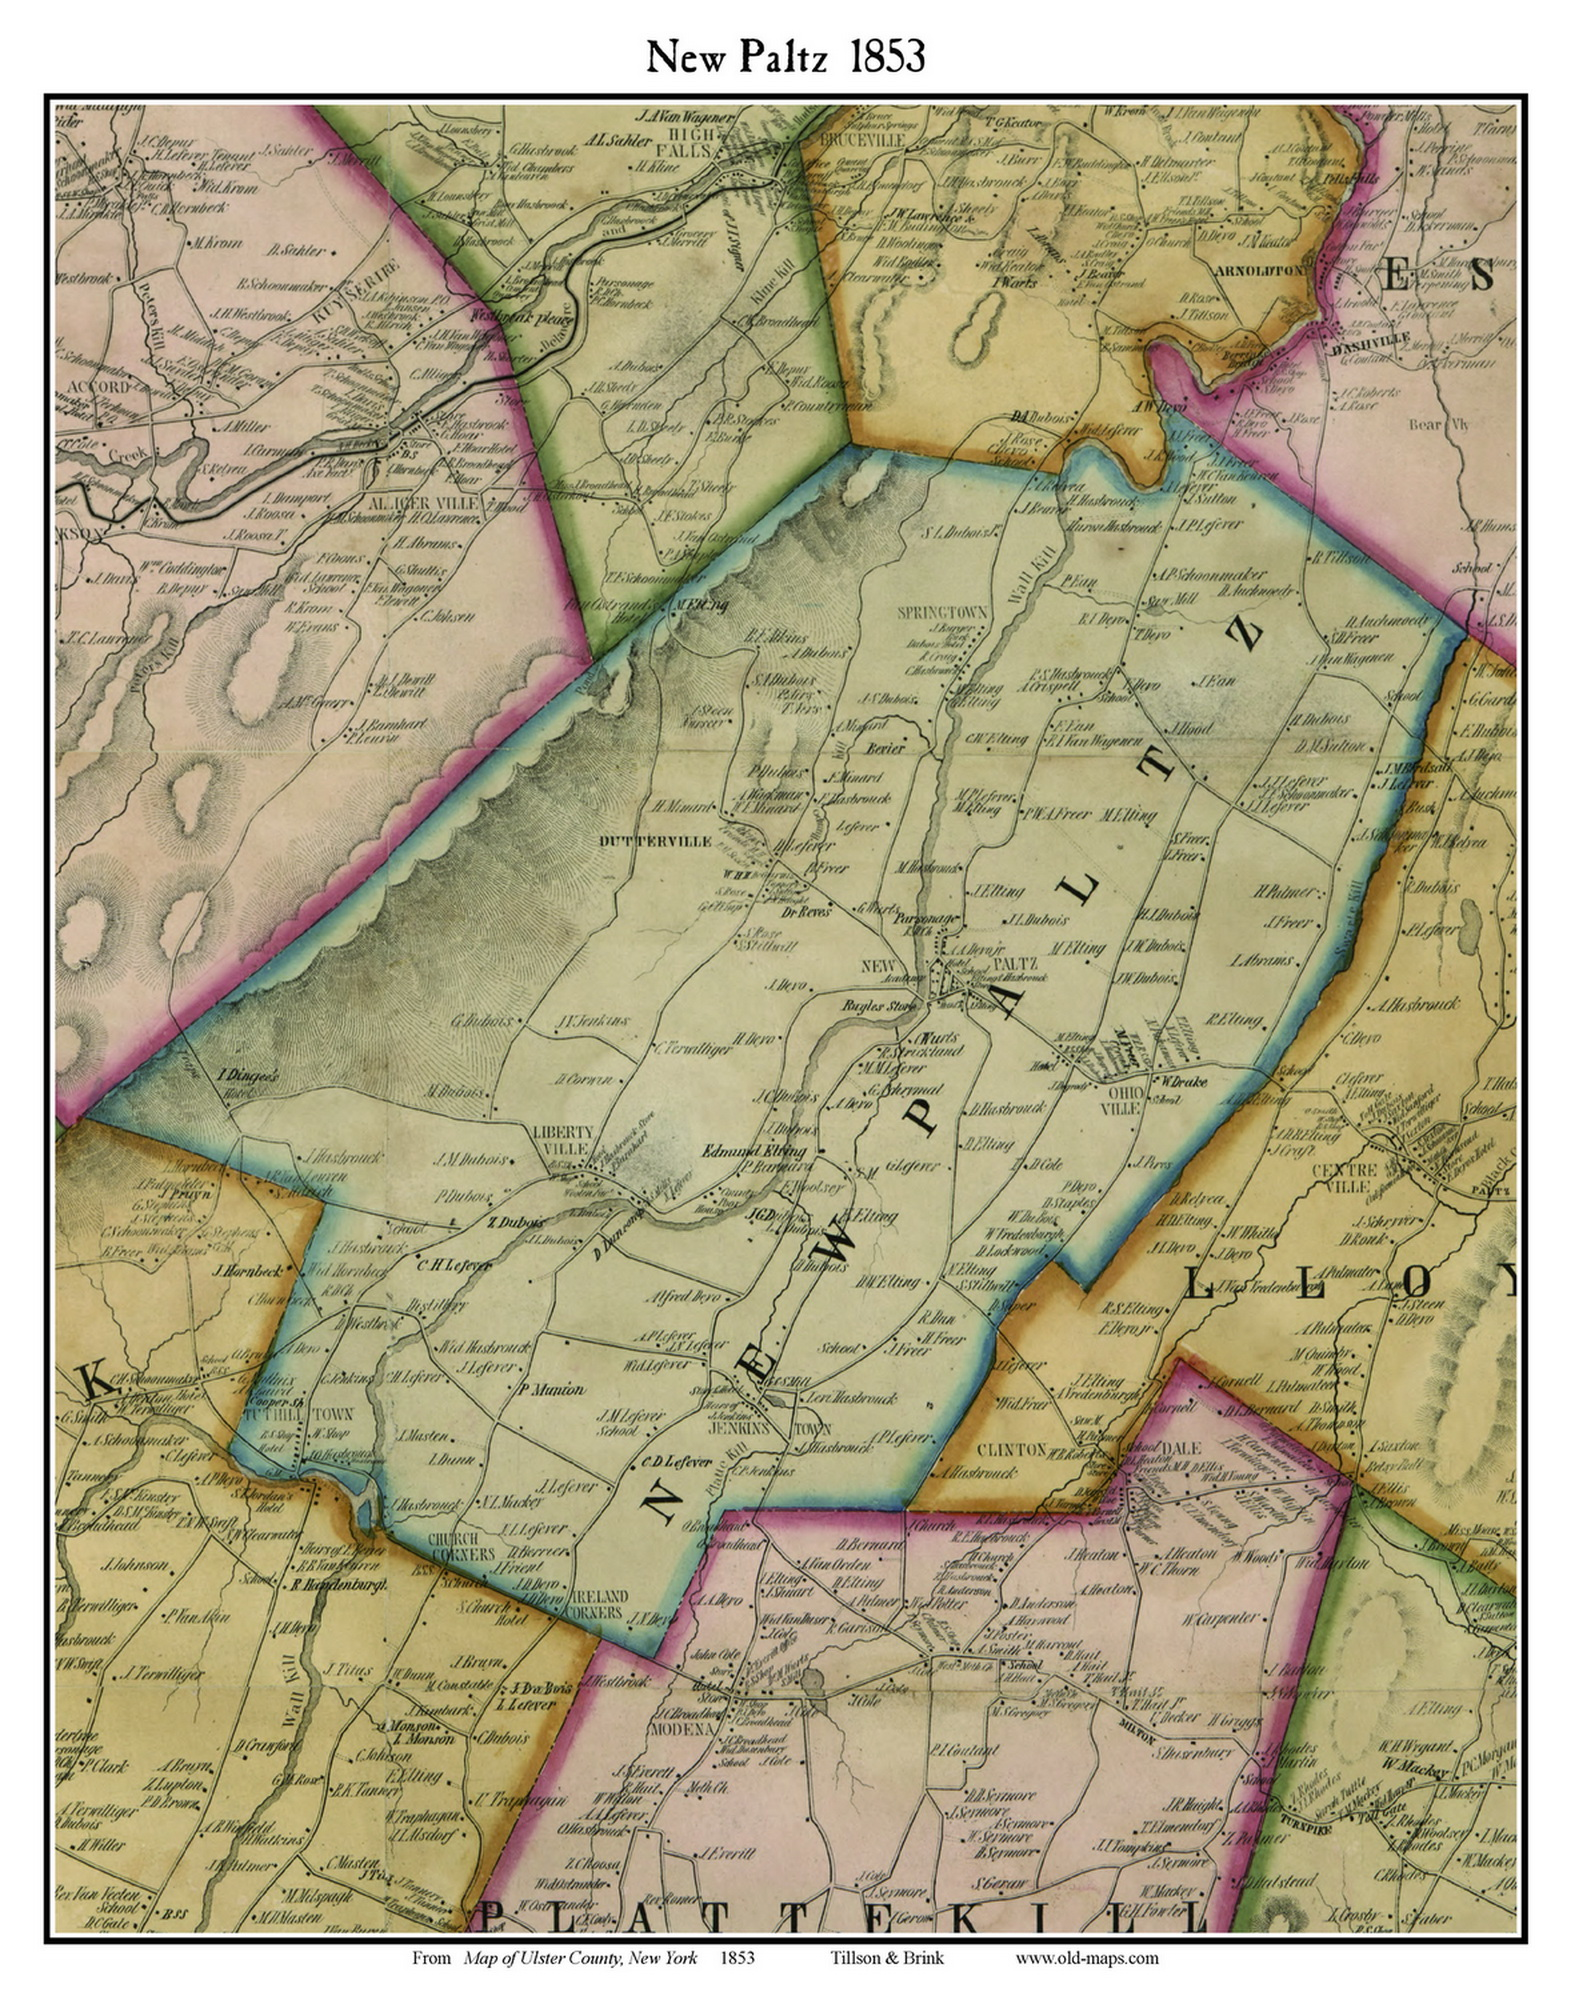 New Paltz  New York 1853 Old Town Map Custom Print   Ulster Co moreover Ulster County  New York Genealogy Genealogy   FamilySearch Wiki moreover Antique Dolph   Stewart Map of Ulster County  New York   EBTH furthermore  as well Maps and Plans ☆ Town of Denning  Ulster County  New York together with File Sanborn Fire Insurance Map from Ellenville  Ulster County  New furthermore List of counties in New York  state    Wikipedia likewise More Ulster County History furthermore BBB of Metro New York Service Area Map also Ulster County New And Surrounding  munities Towns Haets likewise Ulster County  New York detailed profile   houses  real estate  cost likewise Ulster County New York   Geographicus Rare Antique Maps additionally Ulster Landing and East Kingston together with  together with New York County Map in addition Digital Collections   New York State Archives. on map of ulster county new york